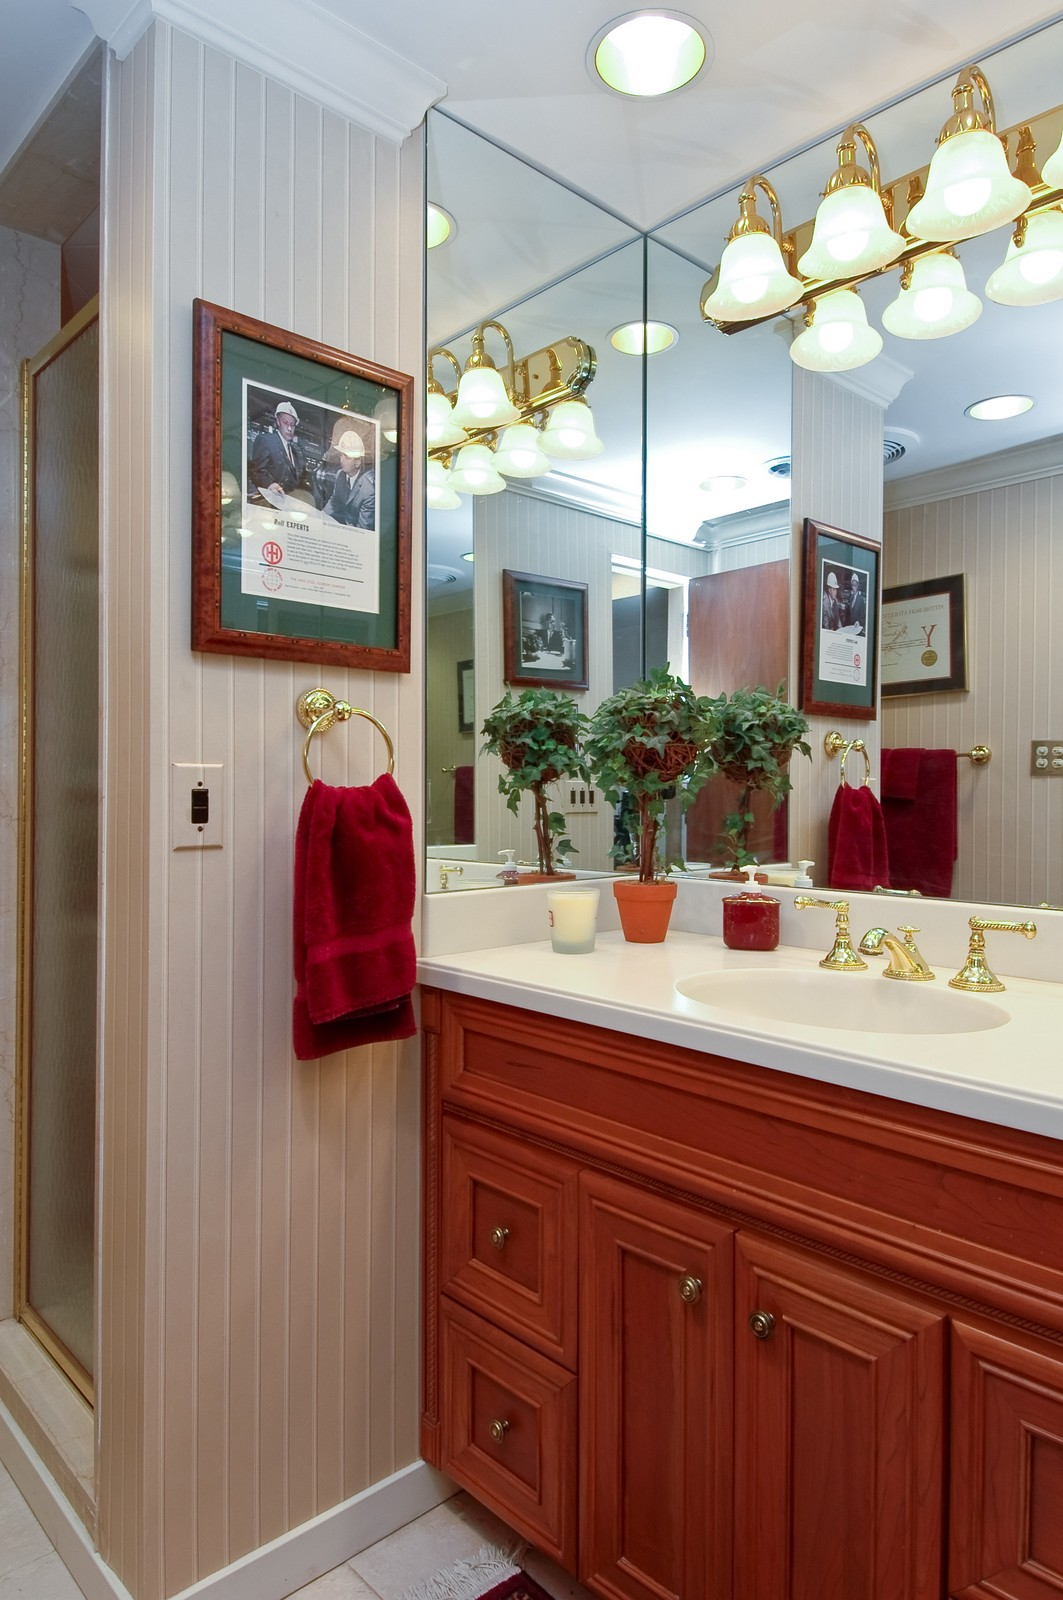 Real Estate Photography - 1700 Grandview Ave, Unit 603, Pittsburgh, PA, 15211 - Master Bathroom